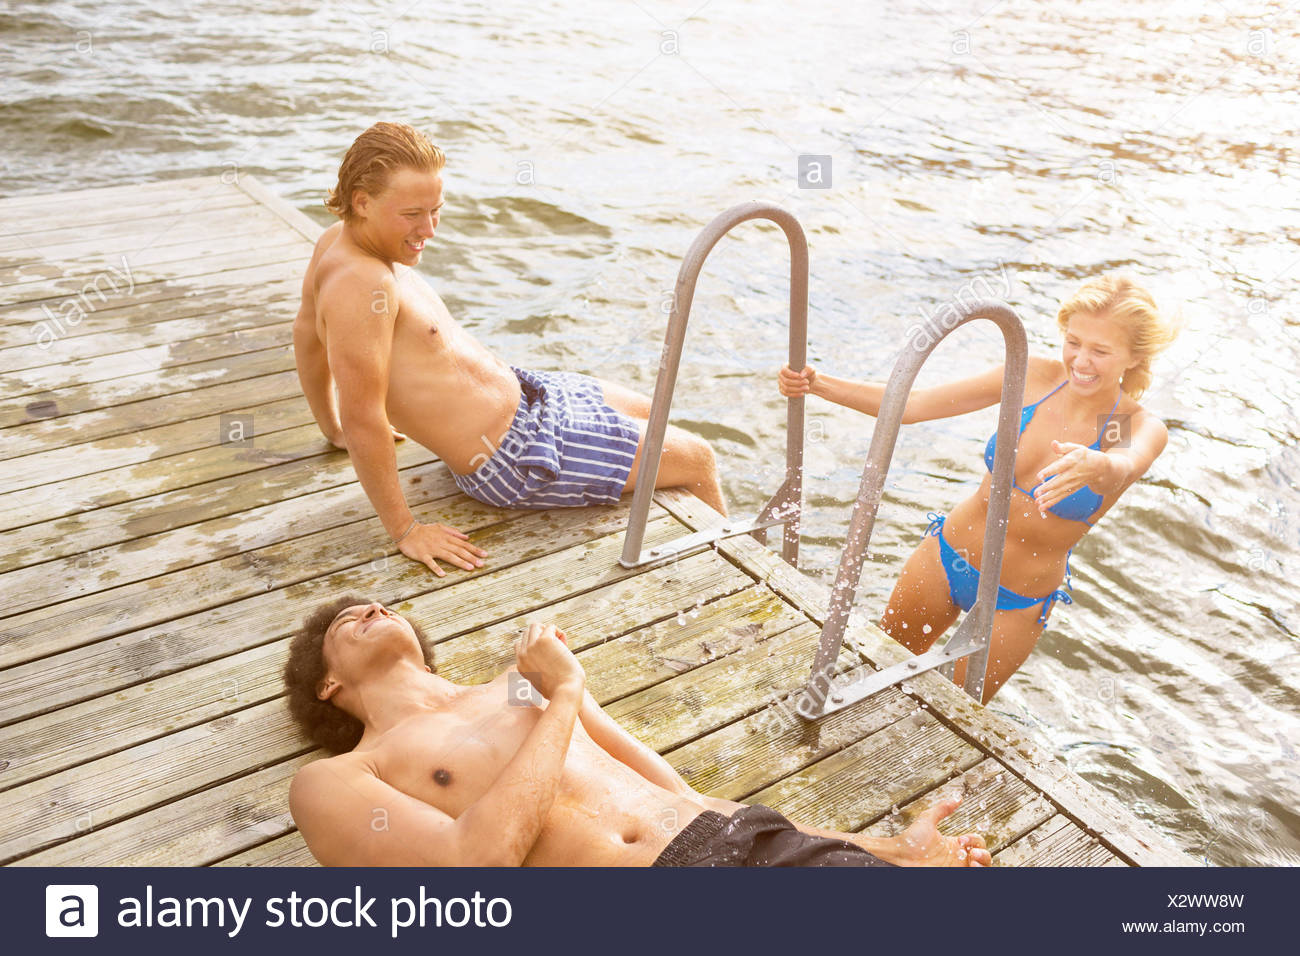 High angle view of friends enjoying vacation on boardwalk at lake - Stock Image